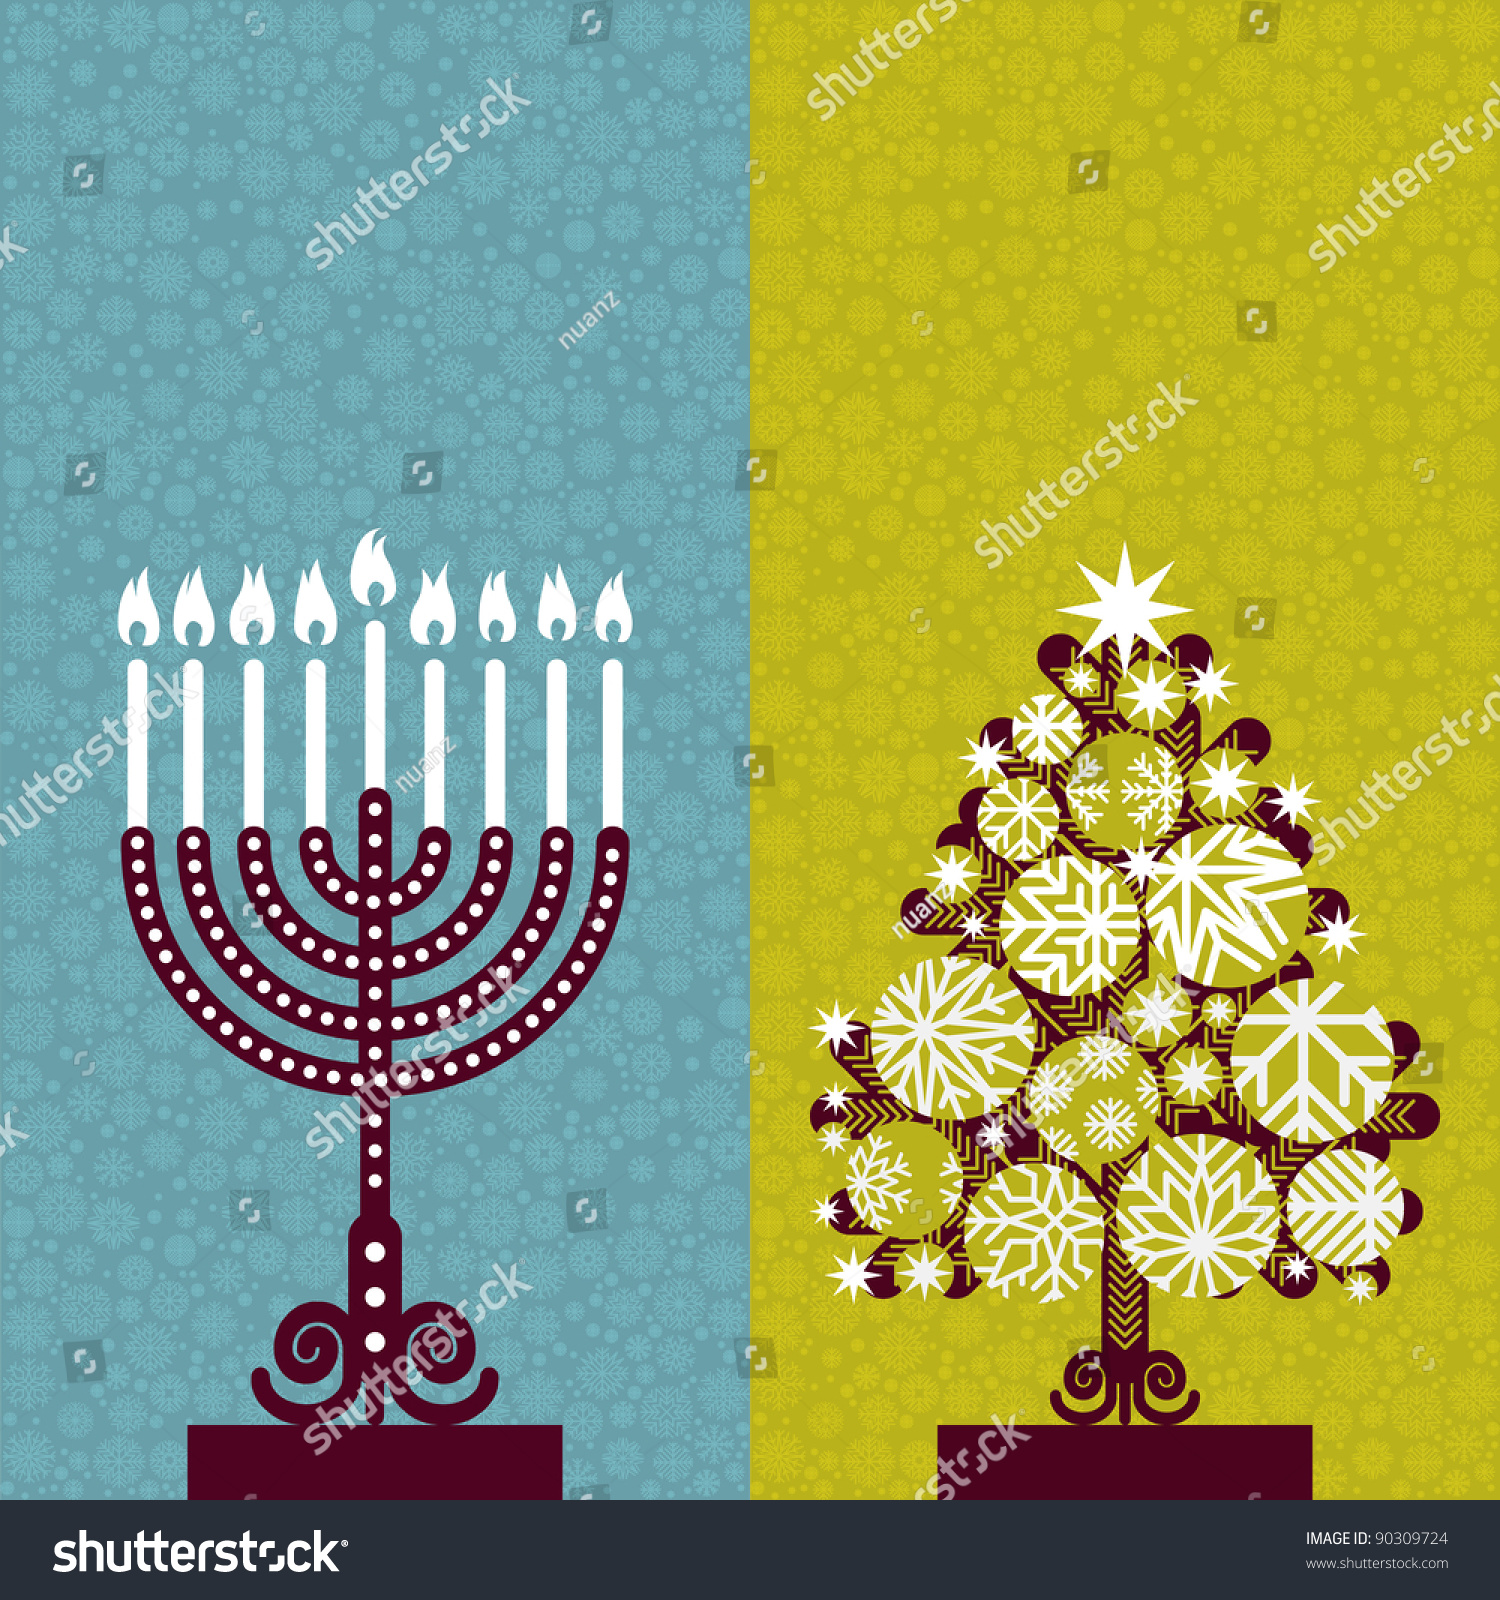 Hanukkah ornaments for a tree - Save To A Lightbox